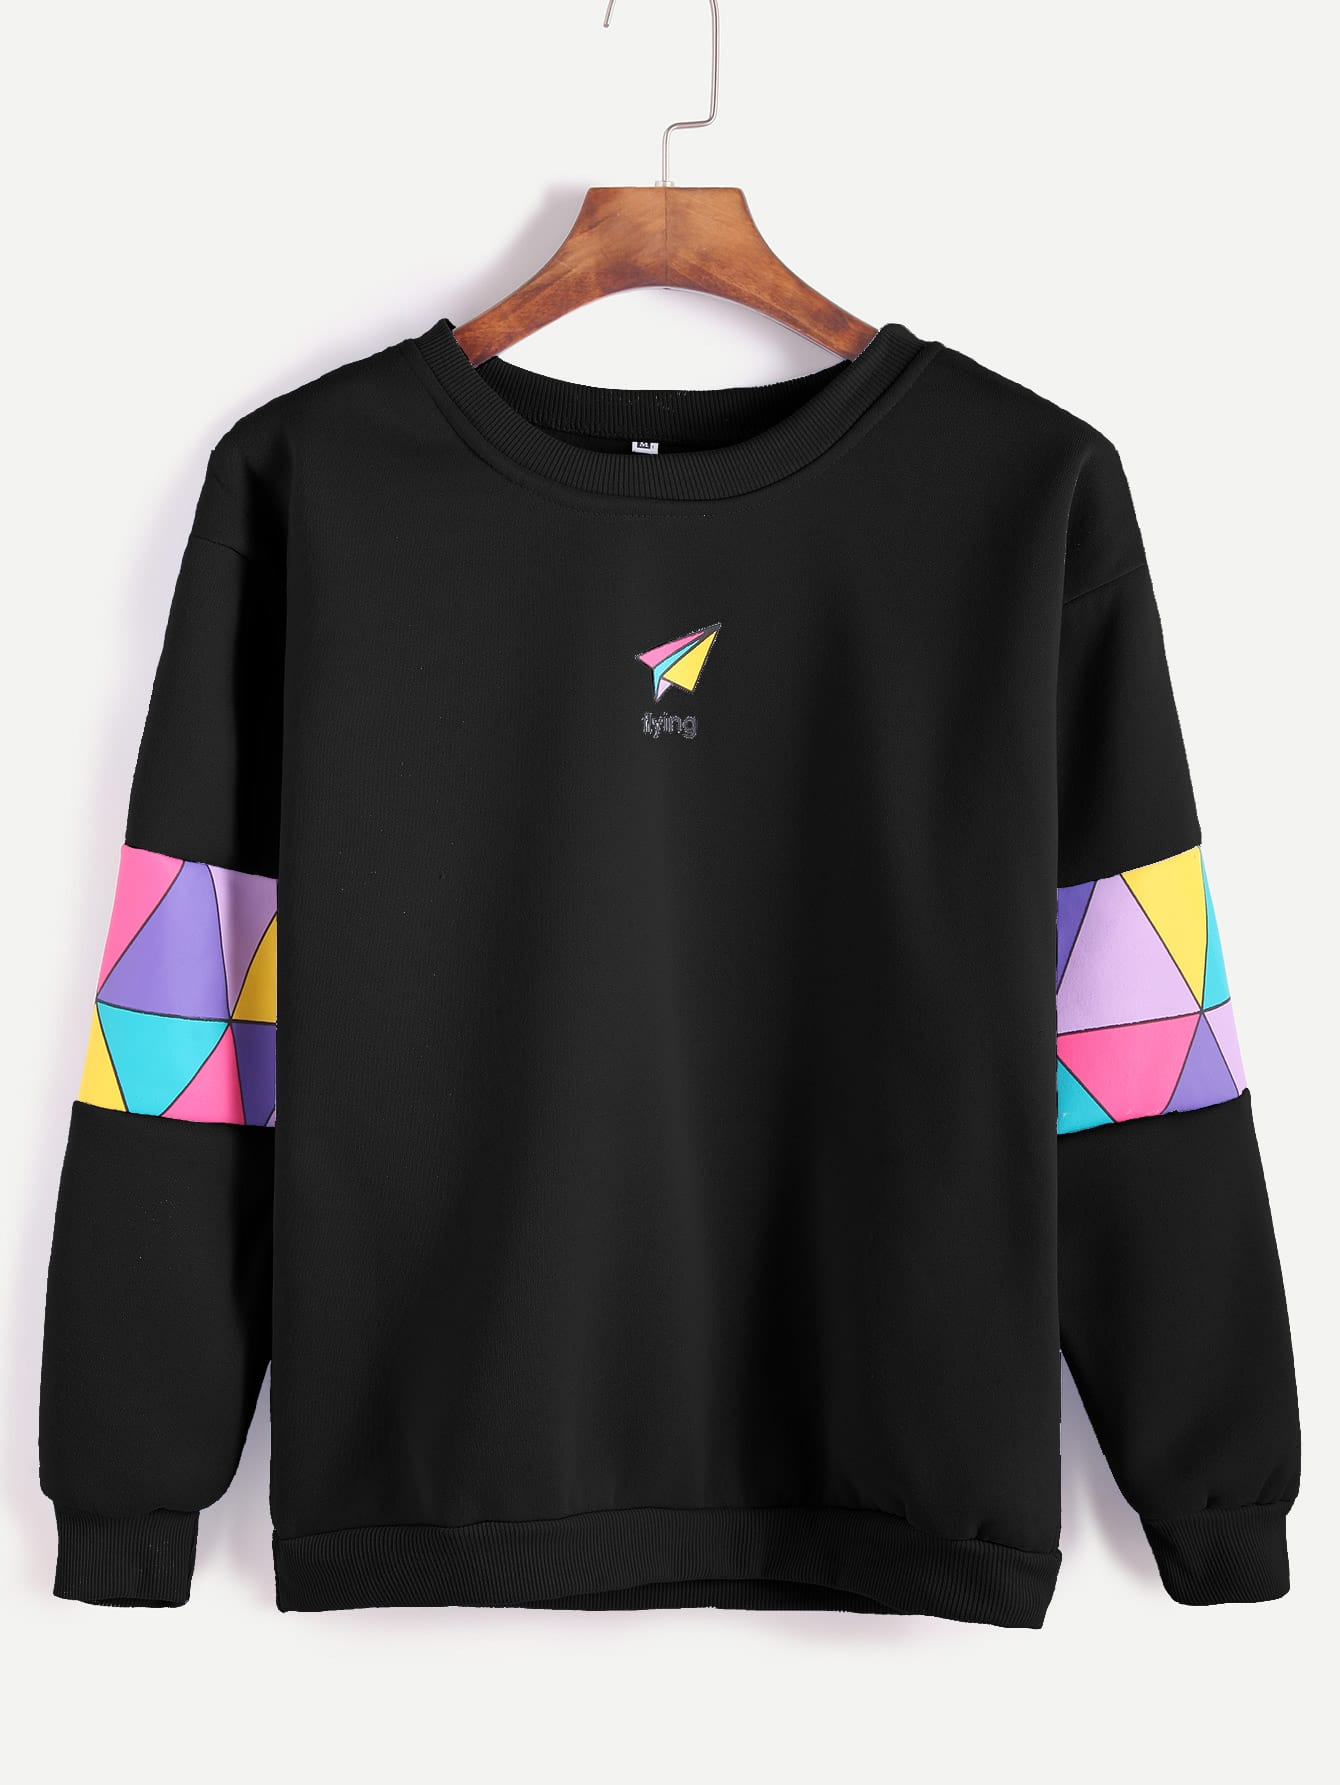 Black Paper Airplane Print Patchwork Trim Sweatshirtfor Women Romwe